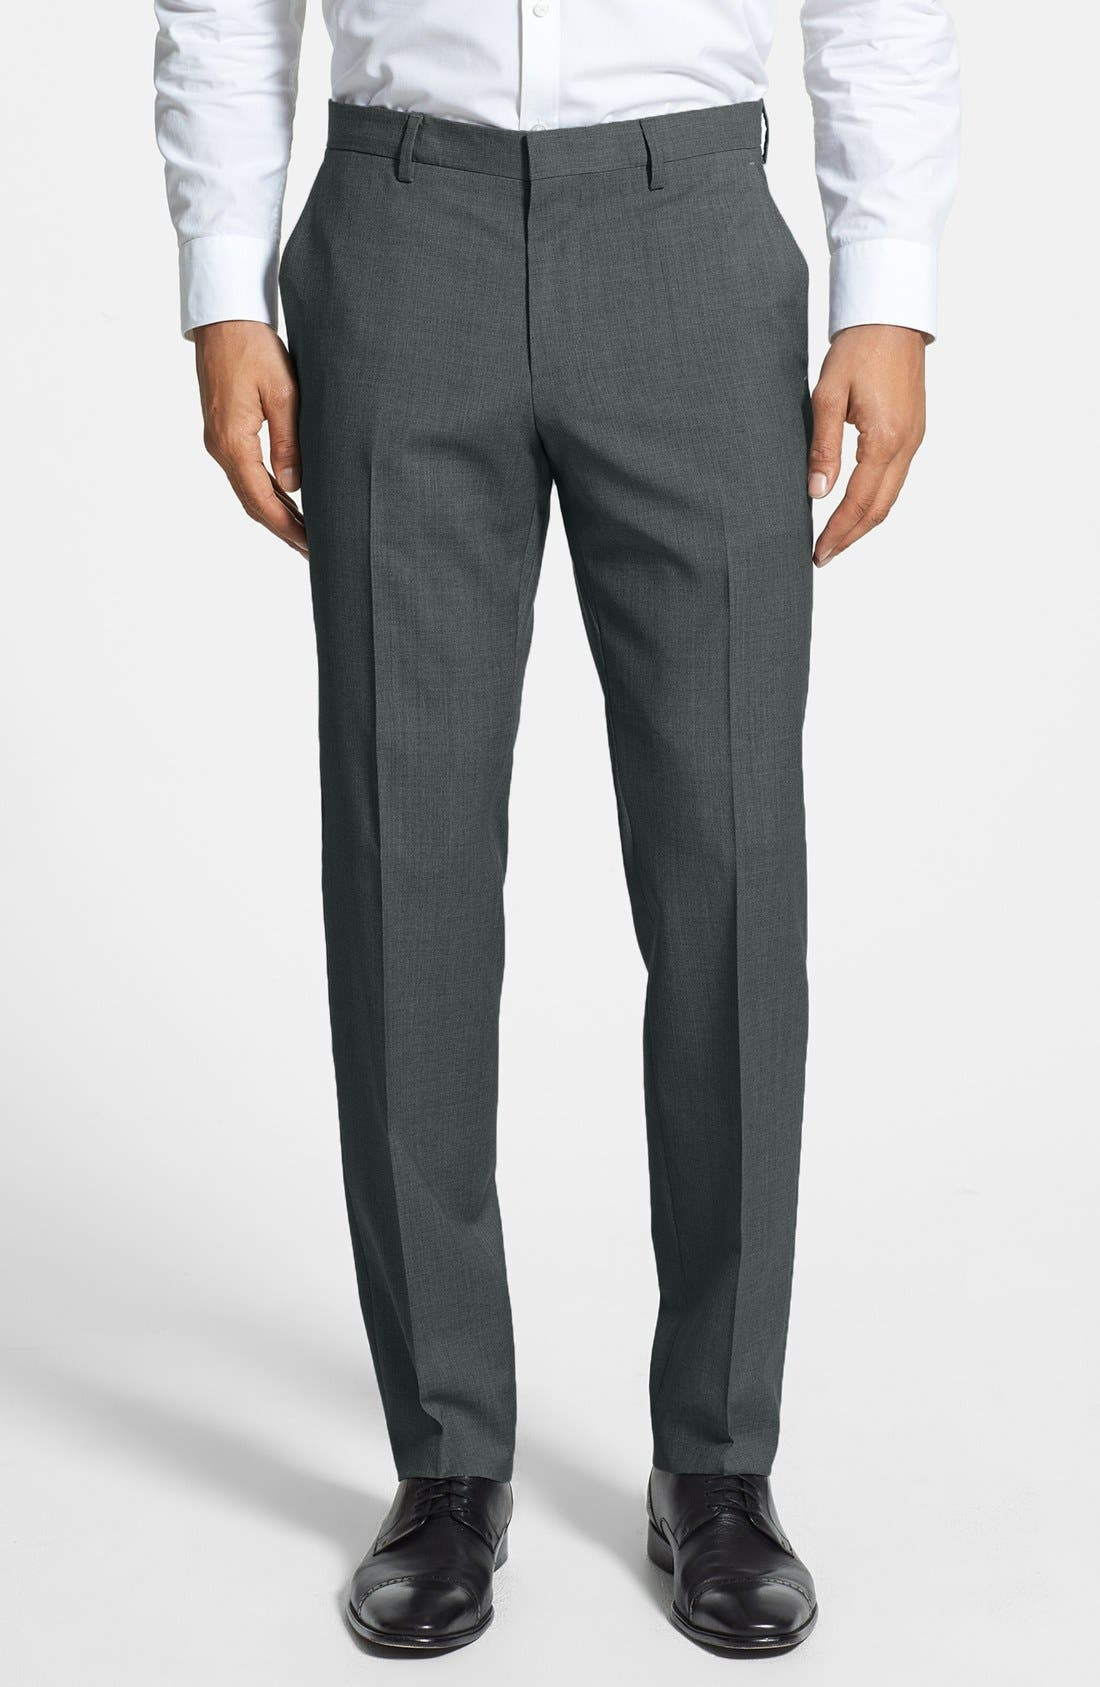 Genesis Flat Front Trim Fit Wool Trousers,                         Main,                         color, CHARCOAL